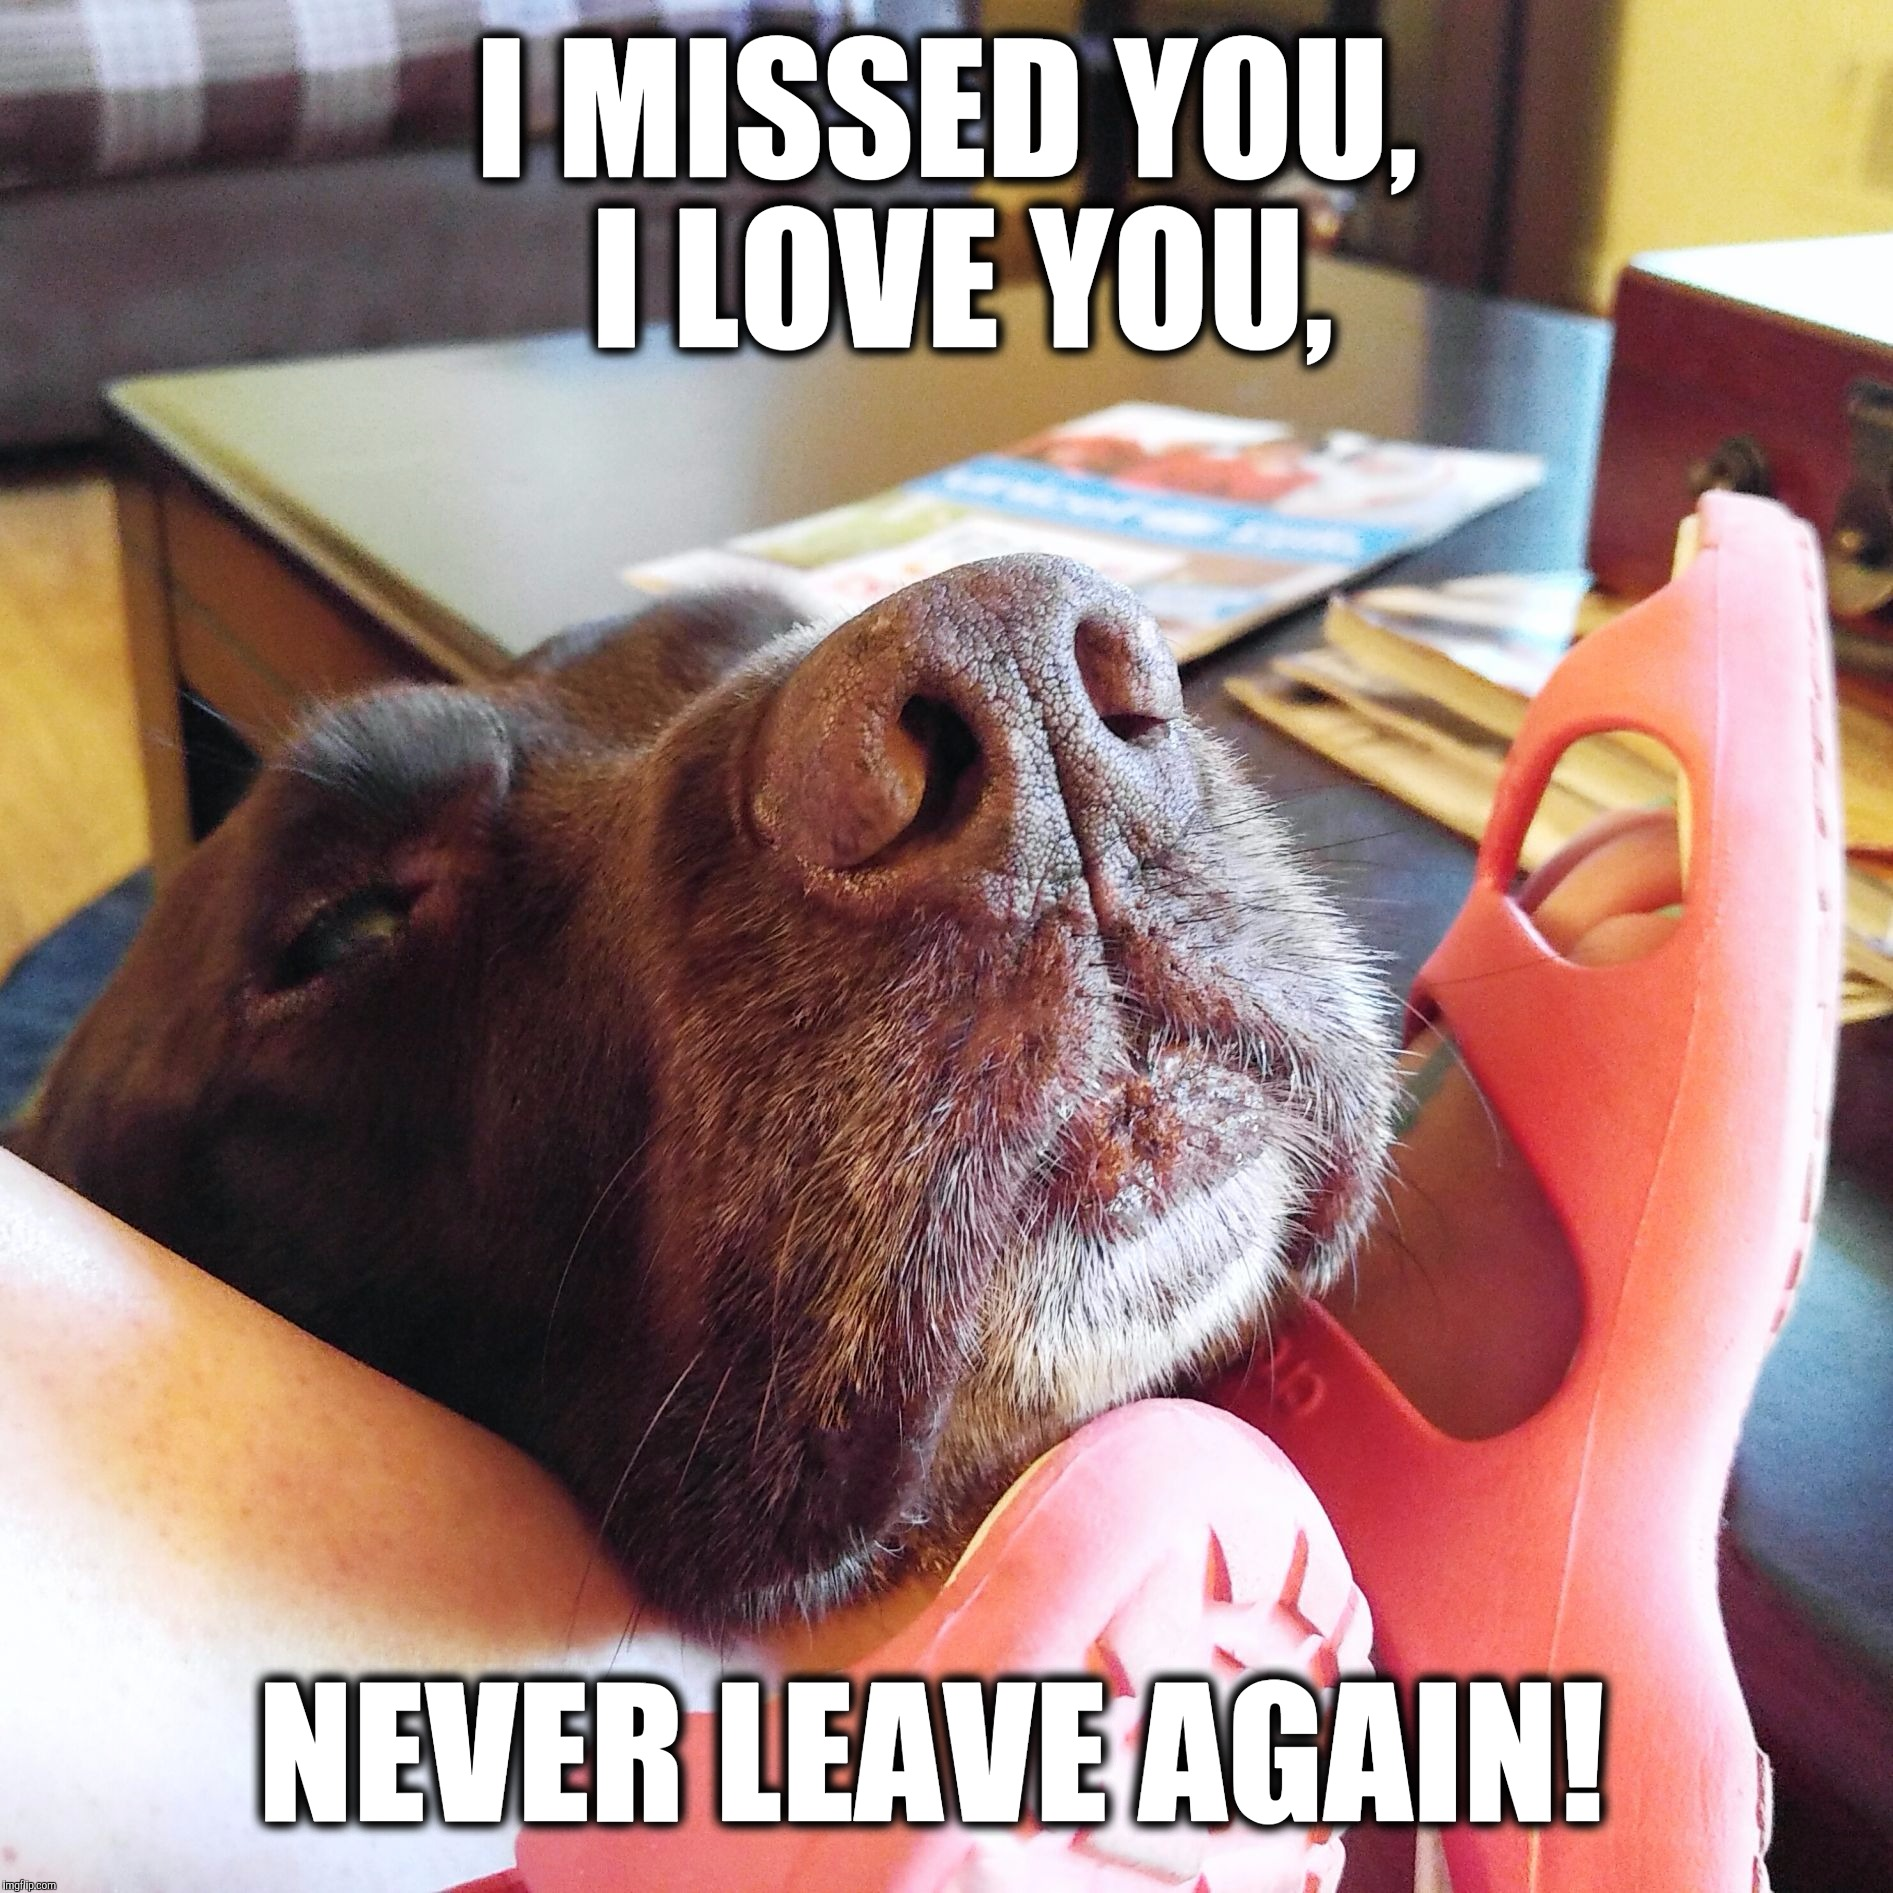 Never leave again!  |  I MISSED YOU, I LOVE YOU, NEVER LEAVE AGAIN! | image tagged in chuckie the chocolate lab,i love you,i missed you,never leave again,dog memes,labrador | made w/ Imgflip meme maker